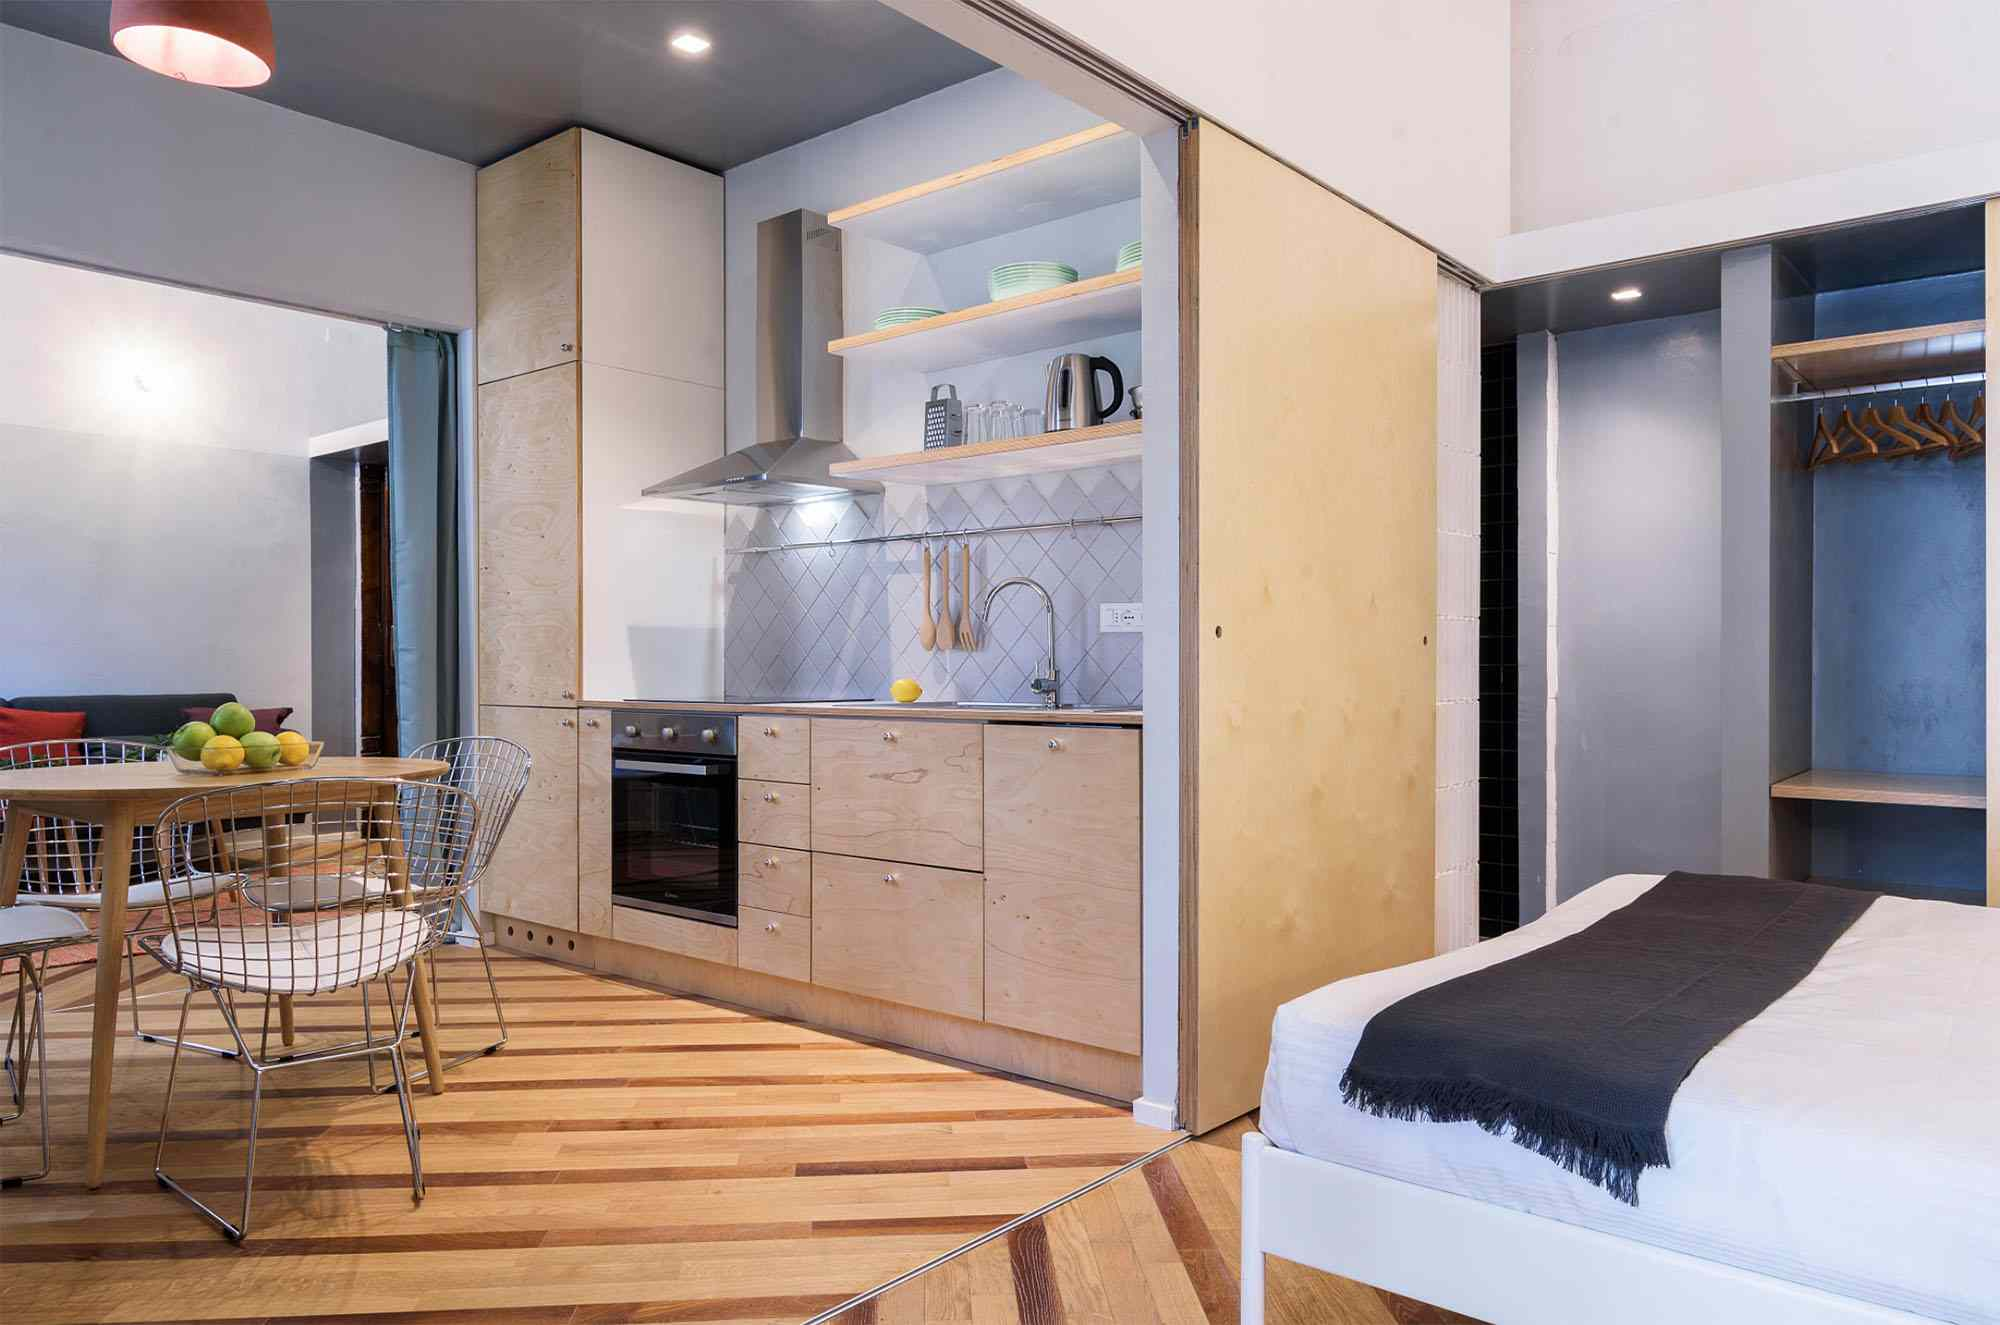 House In Constant Transition small apartment renovation ATOMAA kitchen and bedroom